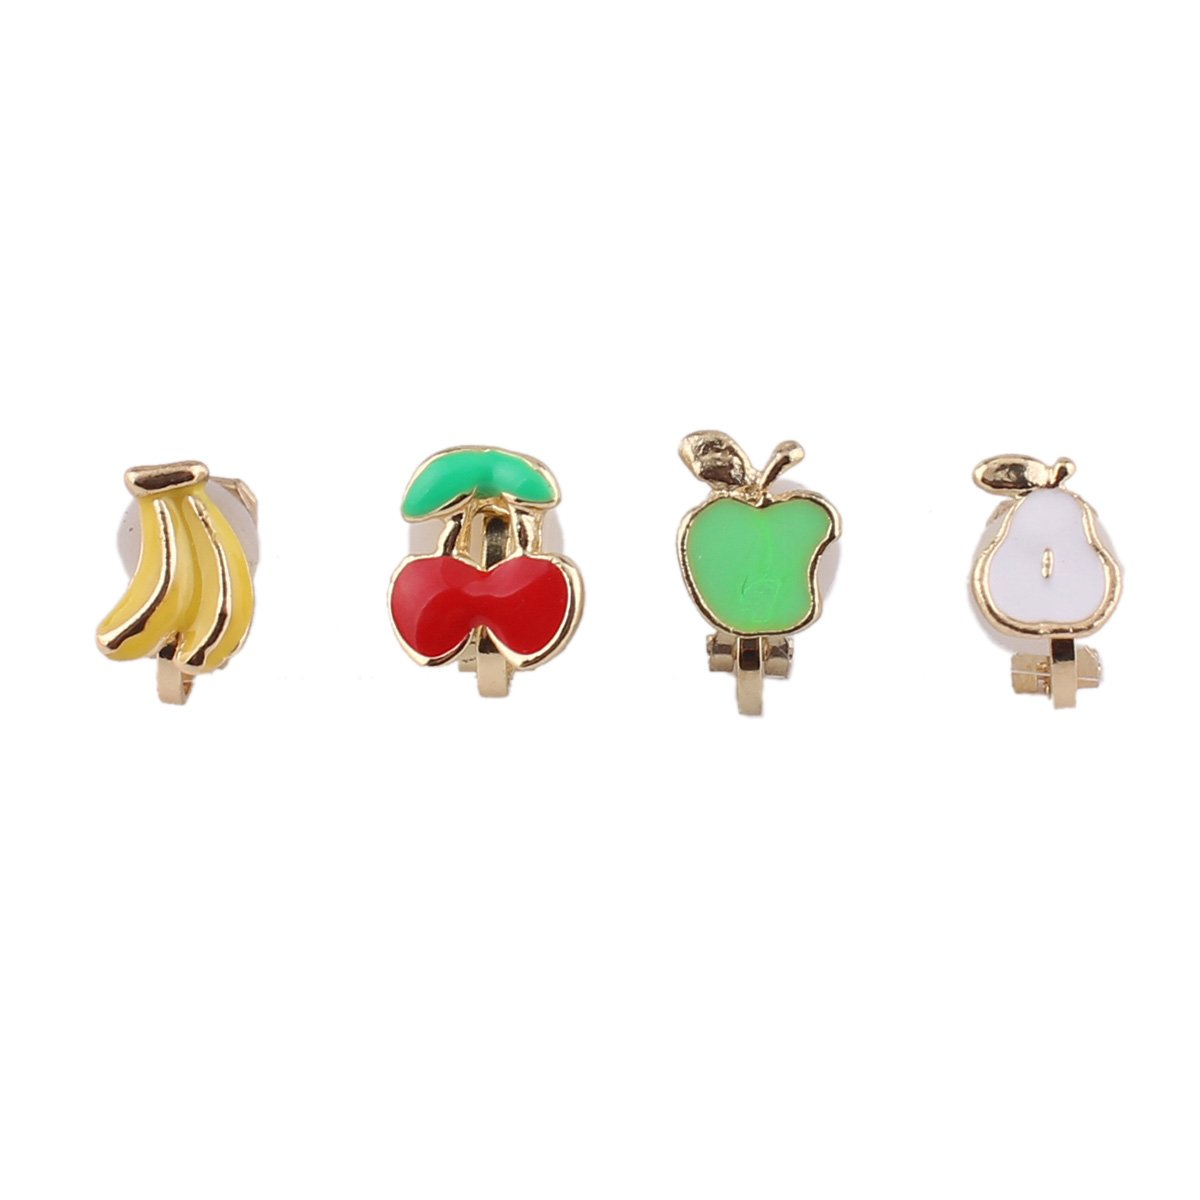 Fashion Cute Small Clover Bowknot Flower Cartoon Clip on Earrings Non Piercing for Girl's Kids (Fruit)